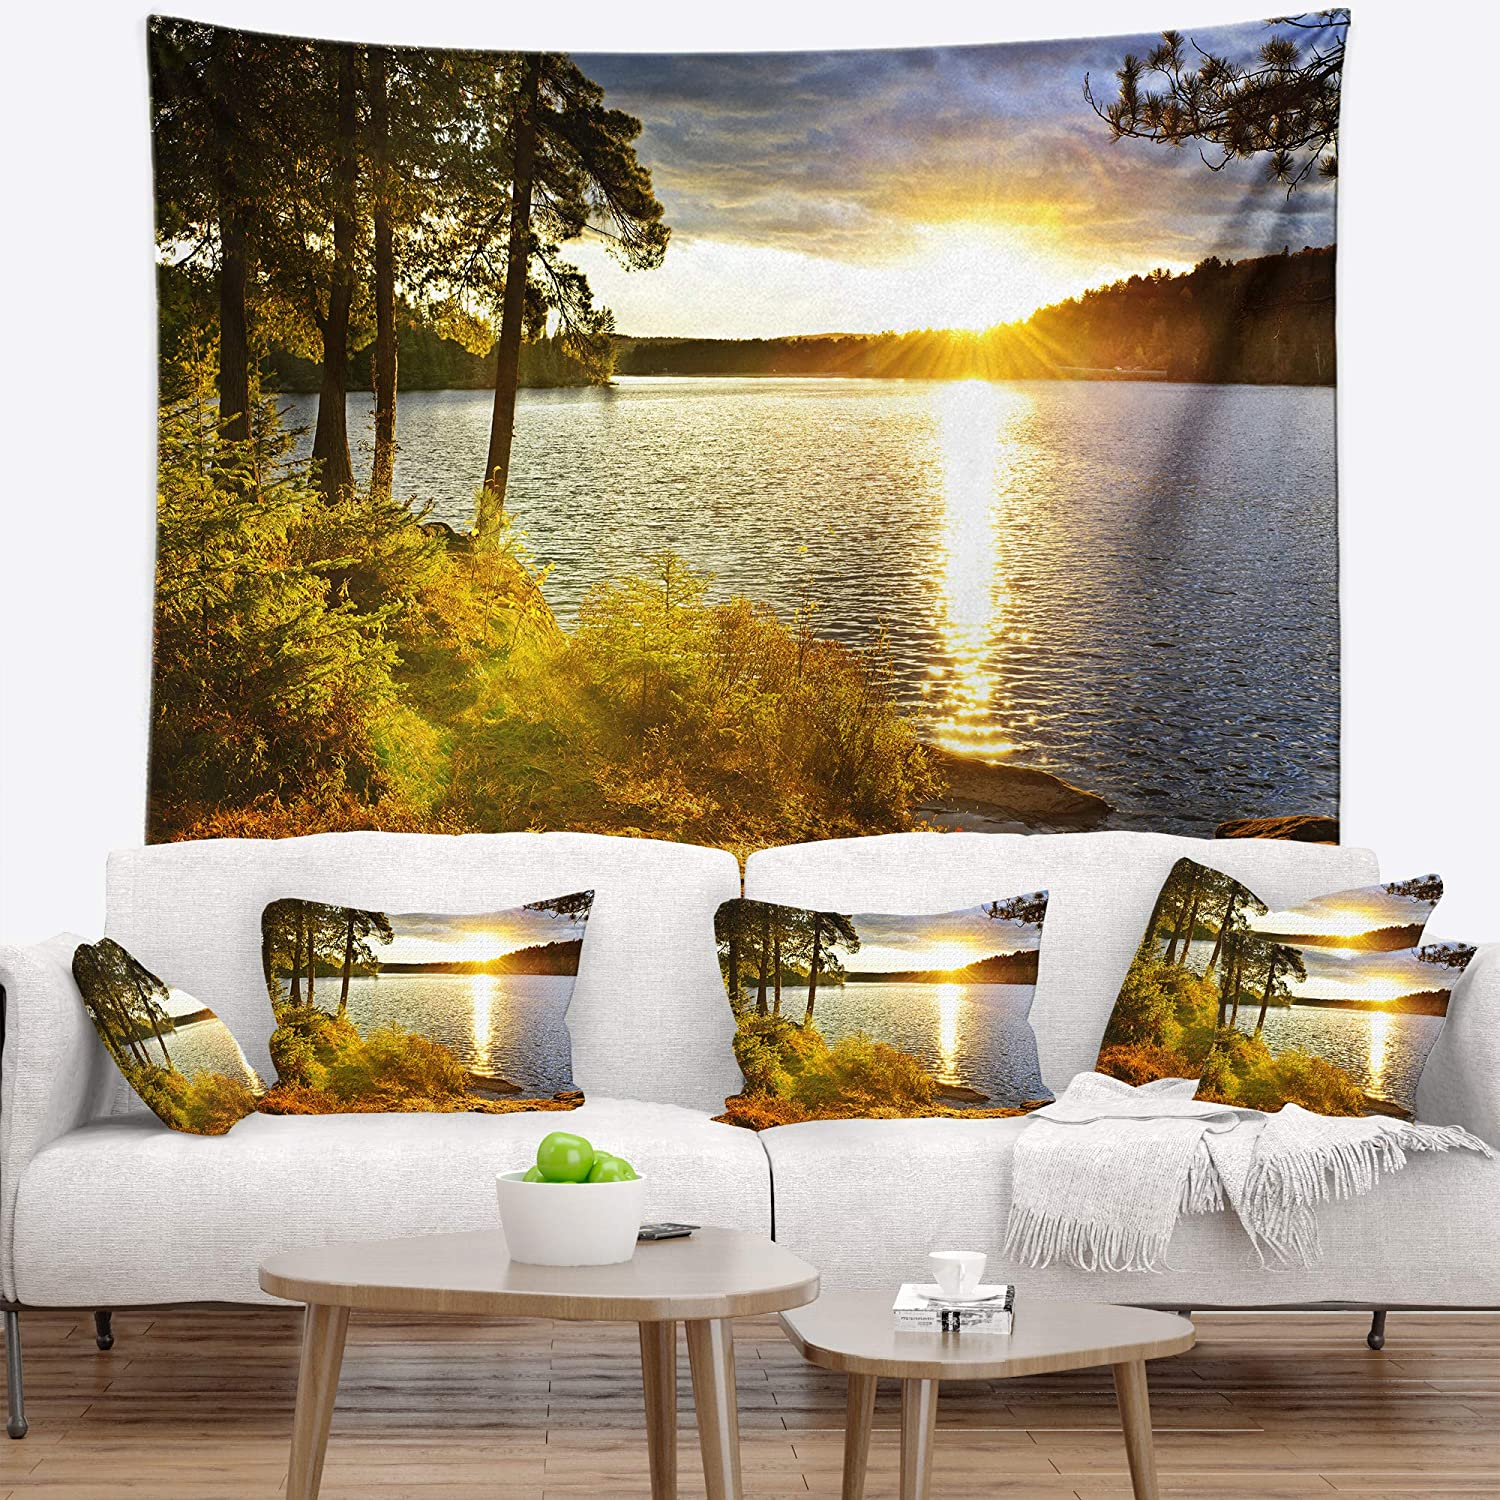 Created On Lightweight Polyester Fabric x 50 in 60 in Designart TAP14301-60-50  Beautiful View of Sunset Over Lake Landscape Blanket D/écor Art for Home and Office Wall Tapestry Large